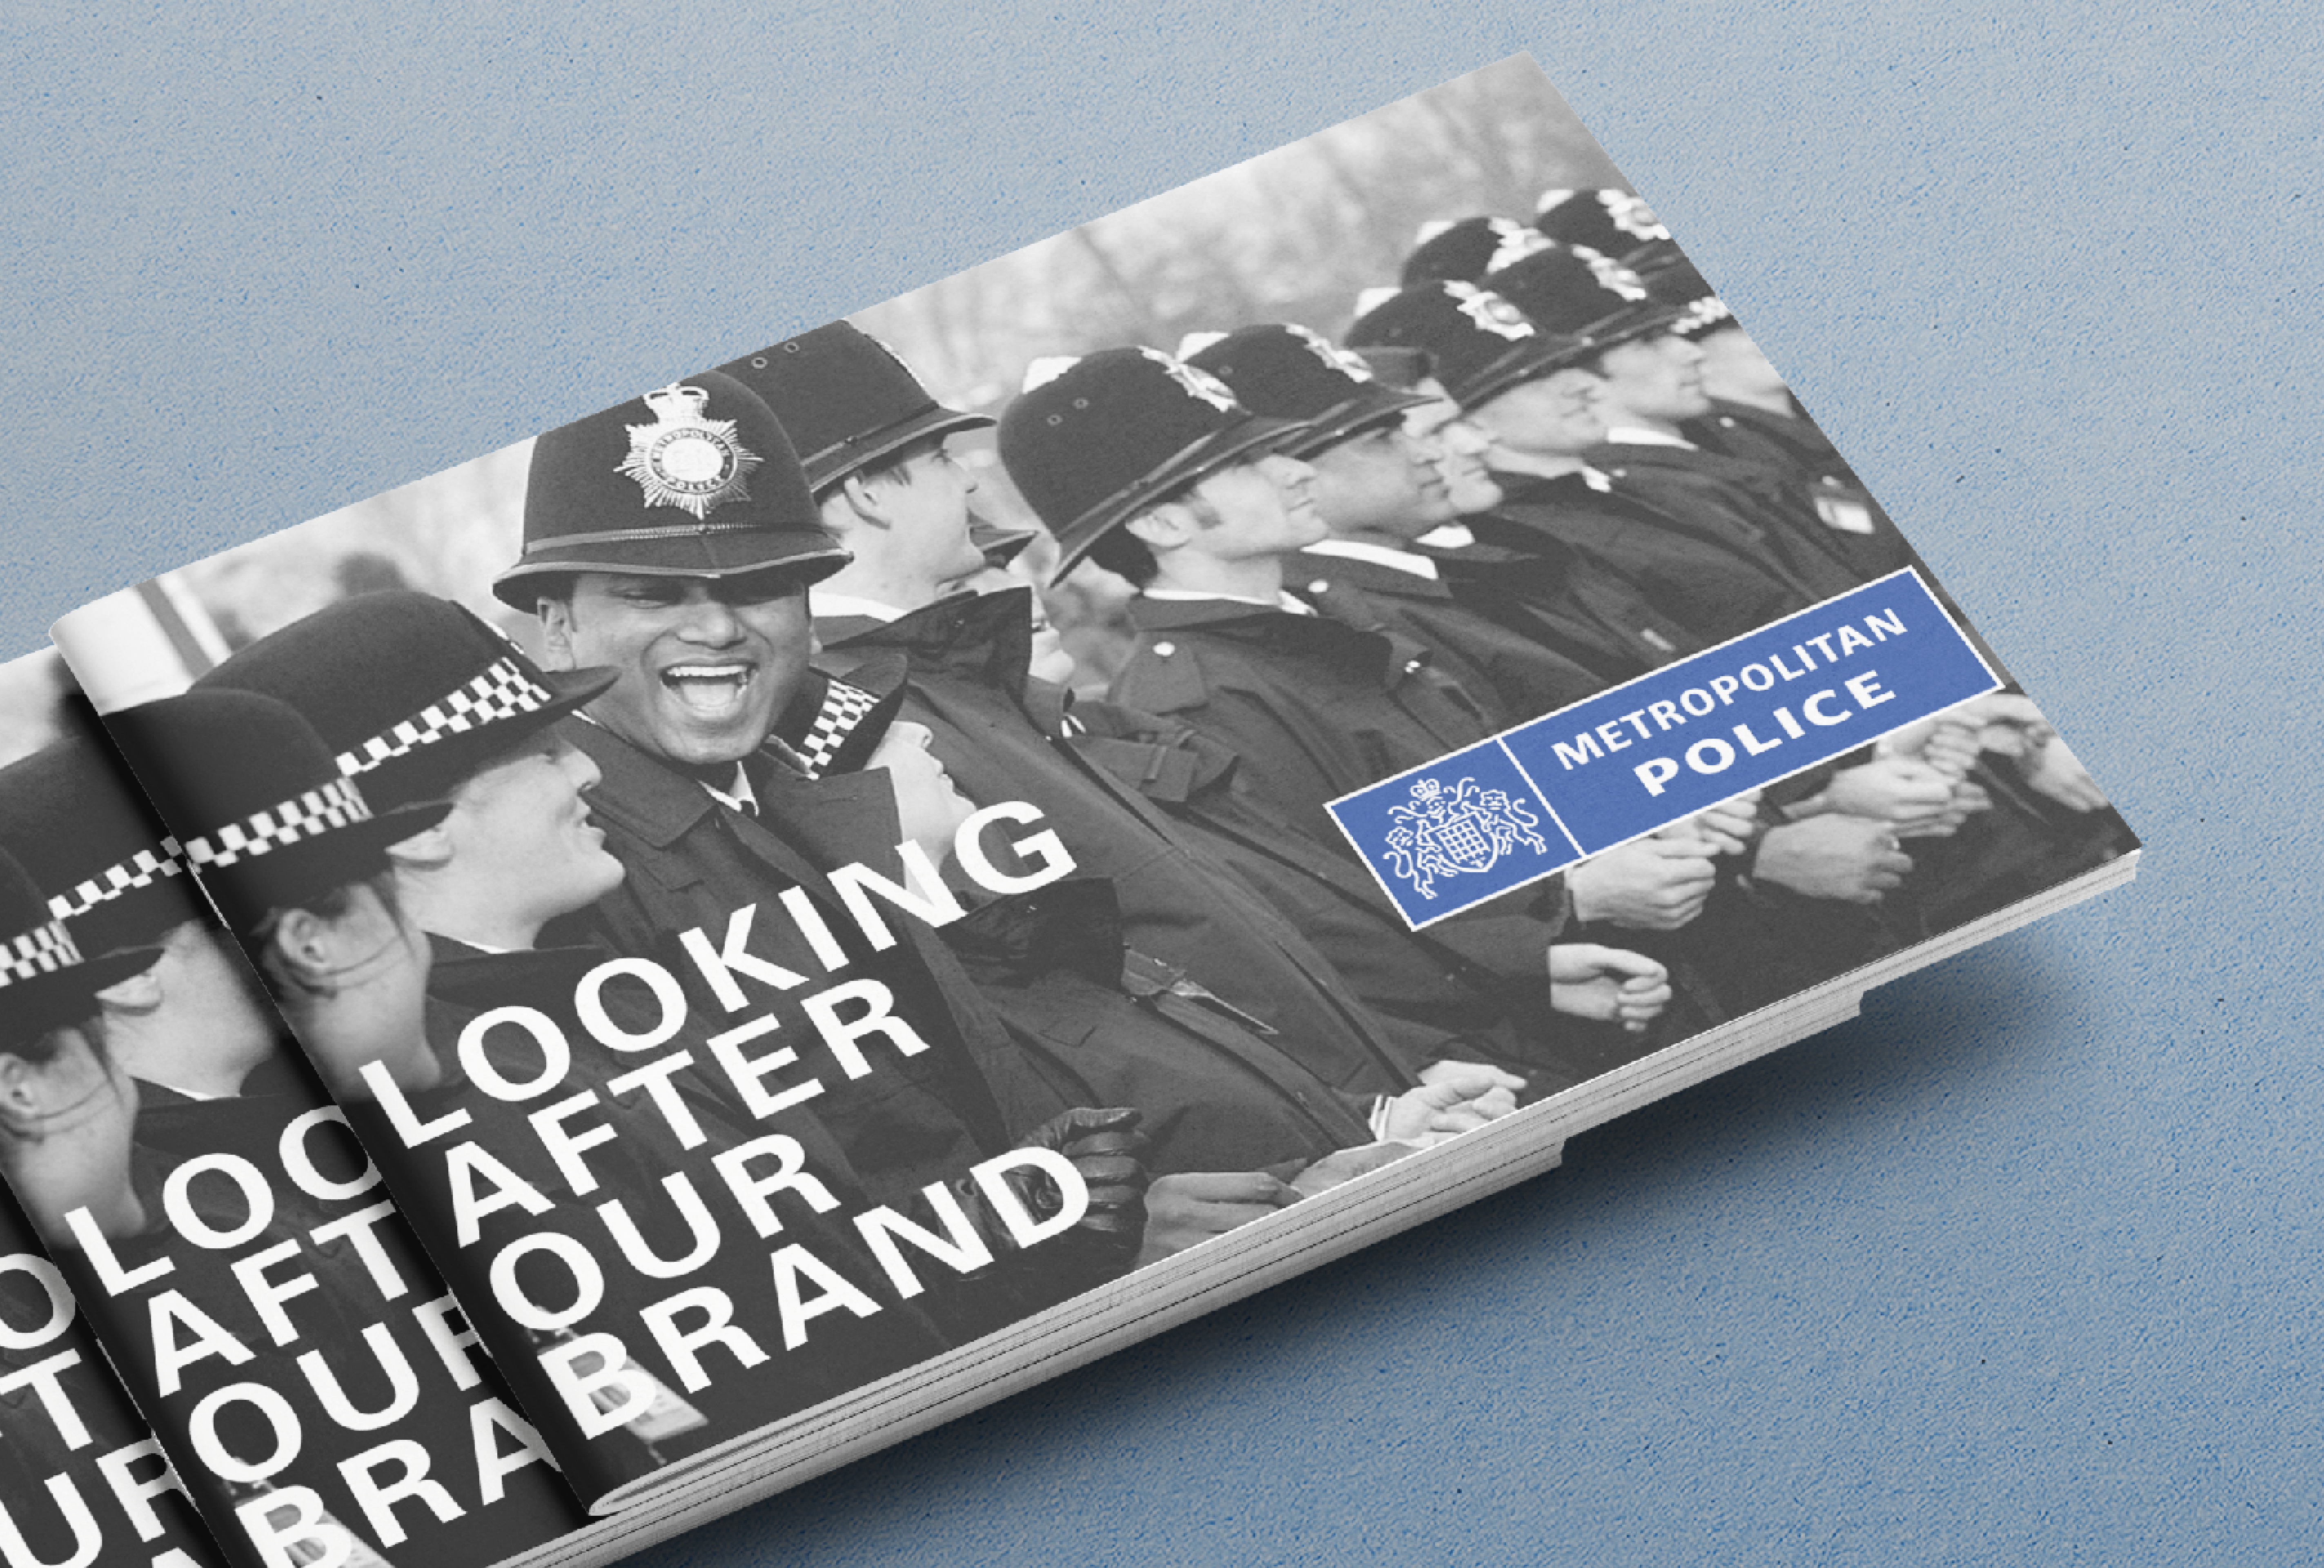 The Met Police brand guidelines cover